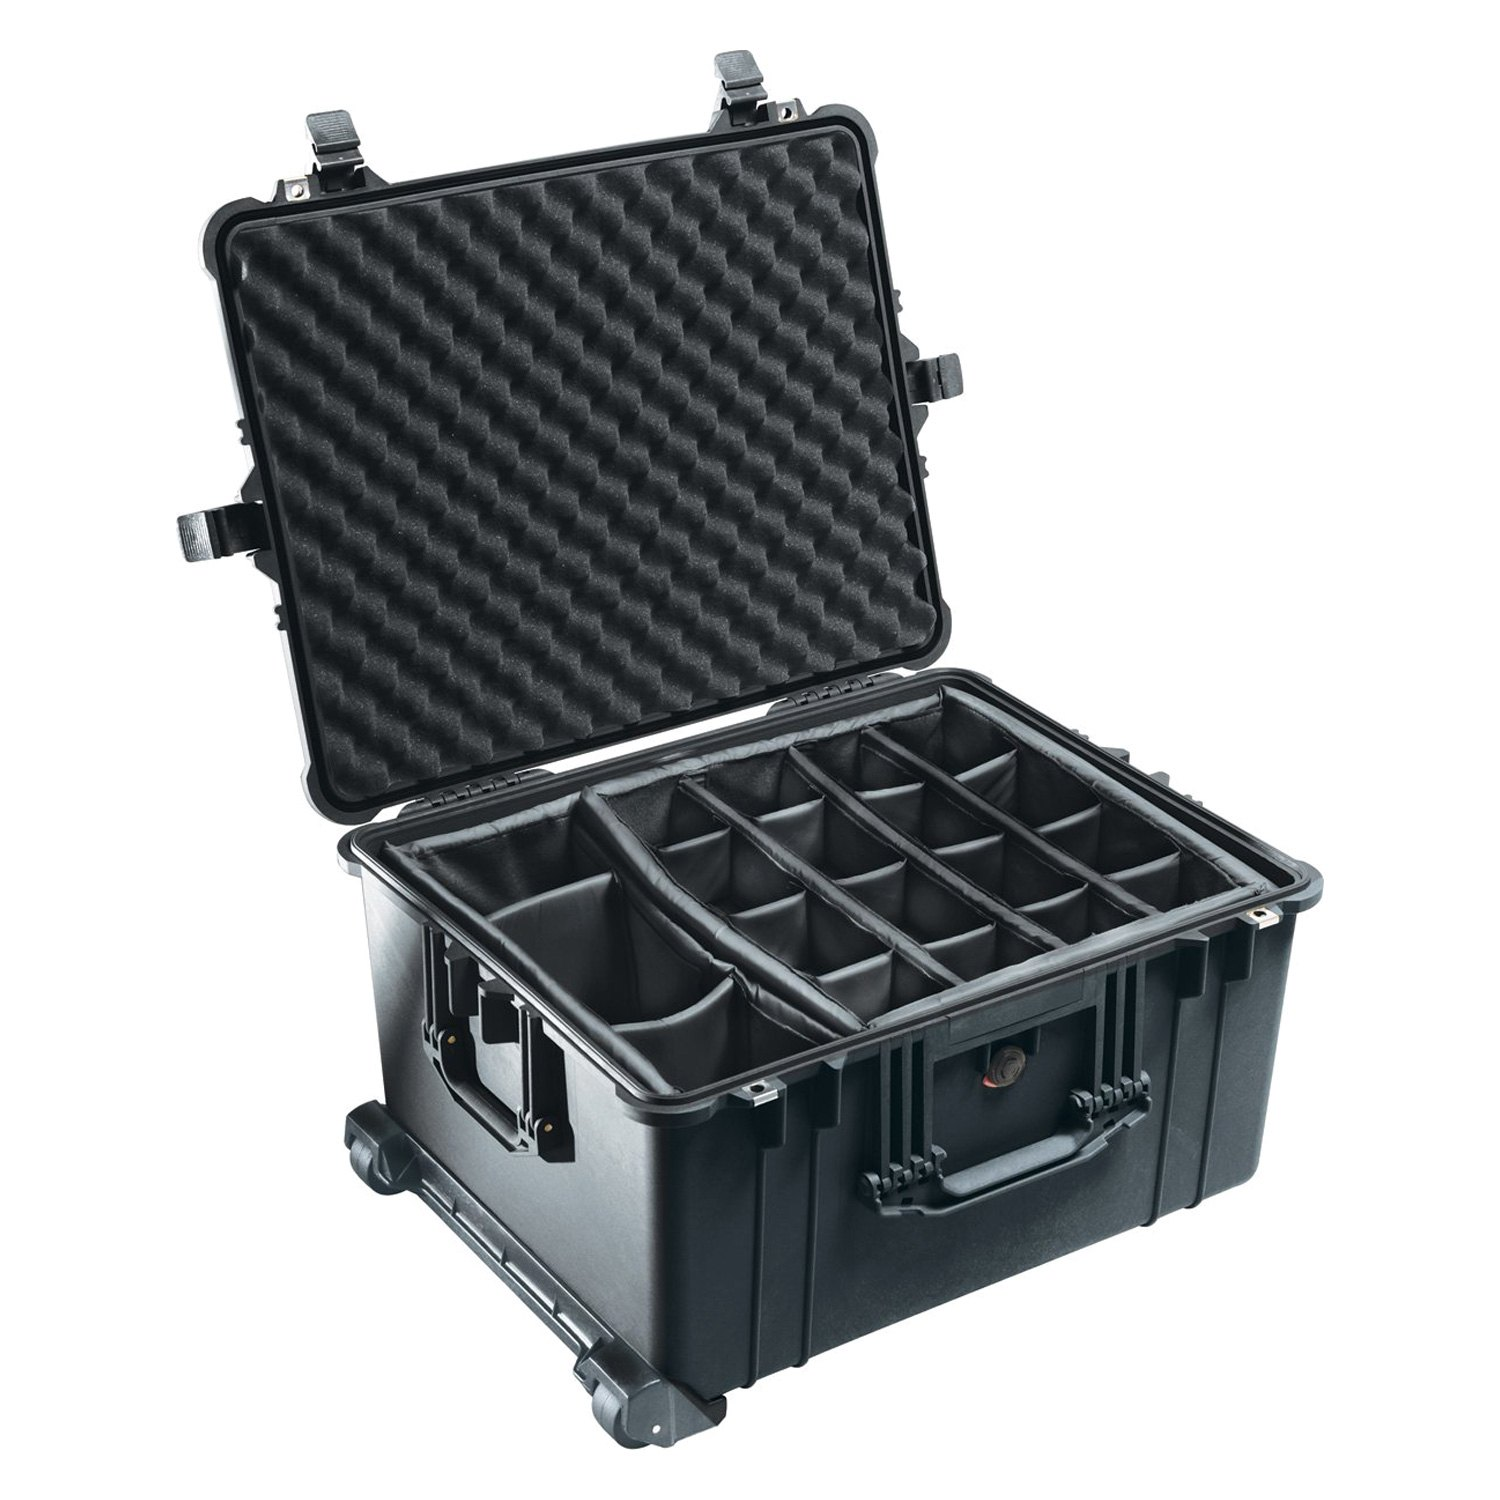 Pelican Protector Case 1620 Series Large Case